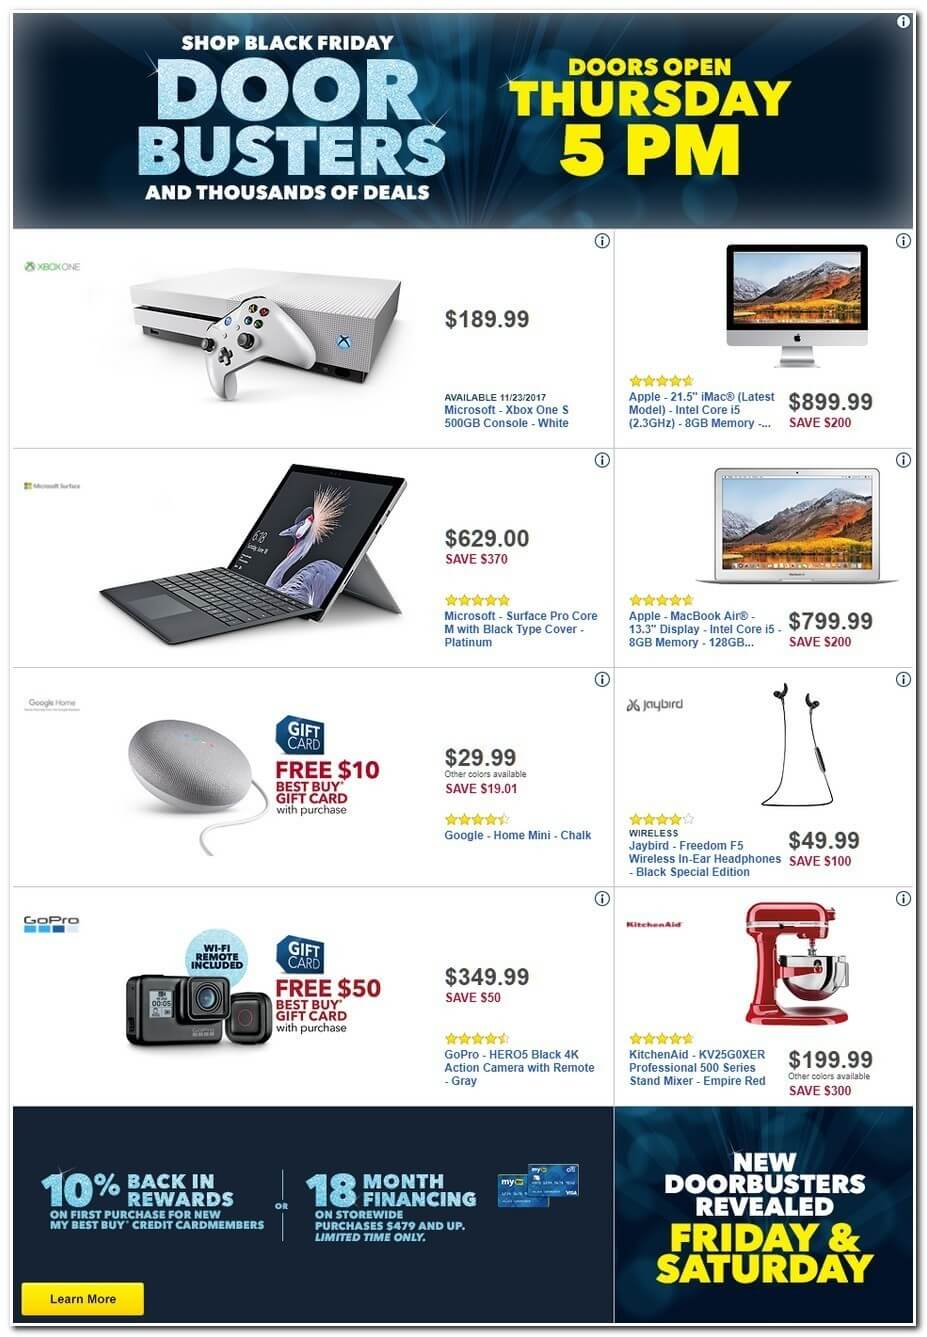 Black Friday 2016 sales at Apple, Walmart, Target & Best Buy news:  Electronics offered at huge discounts ahead of Black Friday